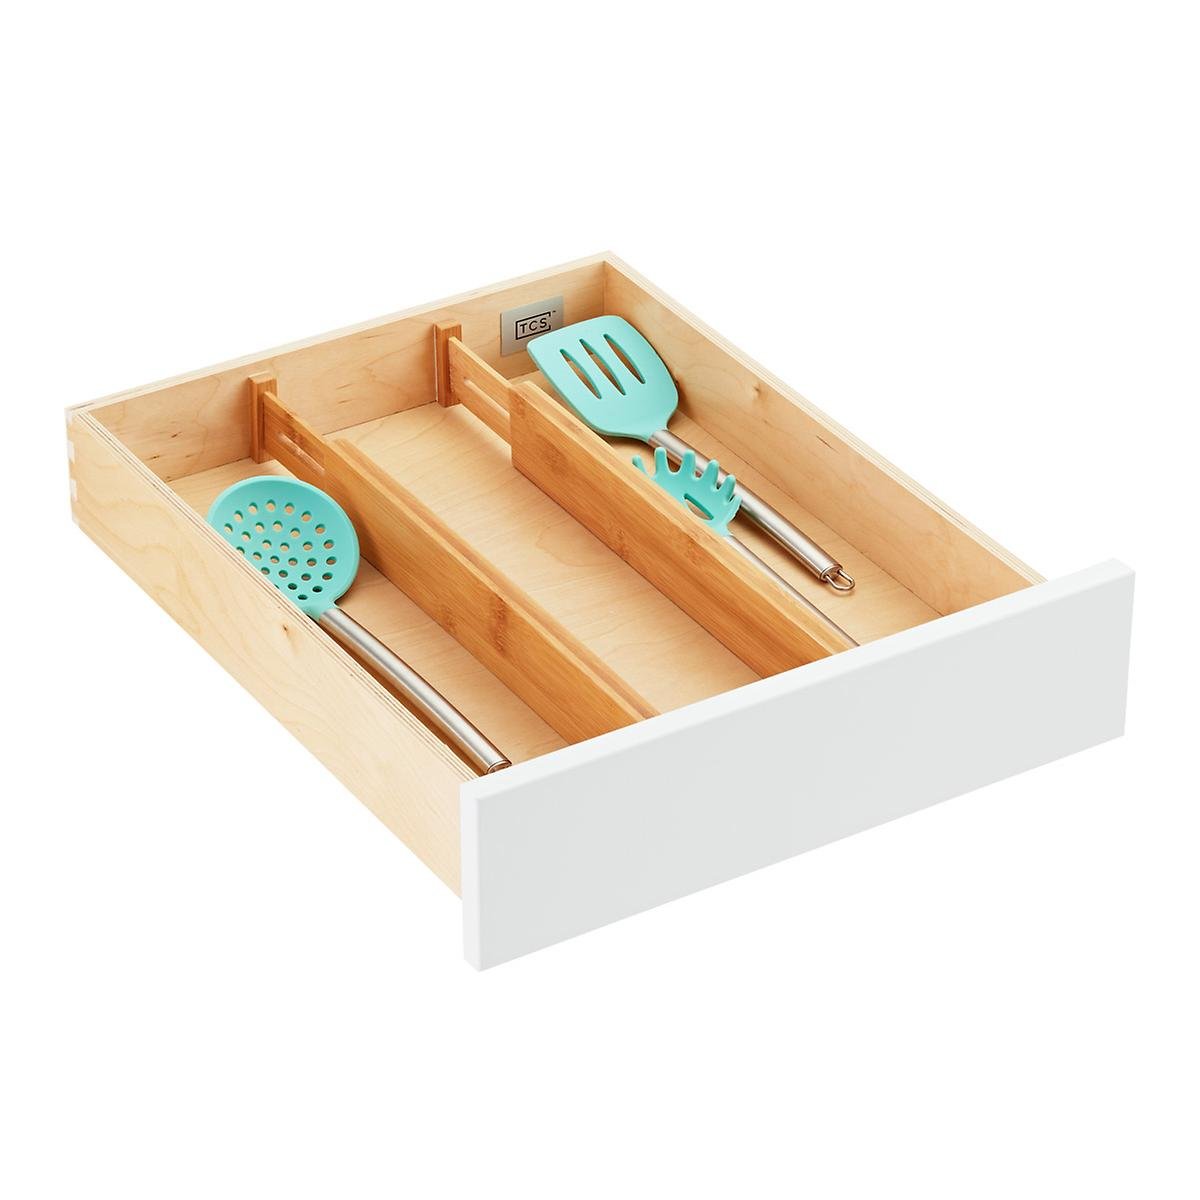 "2.4"" BAMBOO DRAWER DIVIDER"